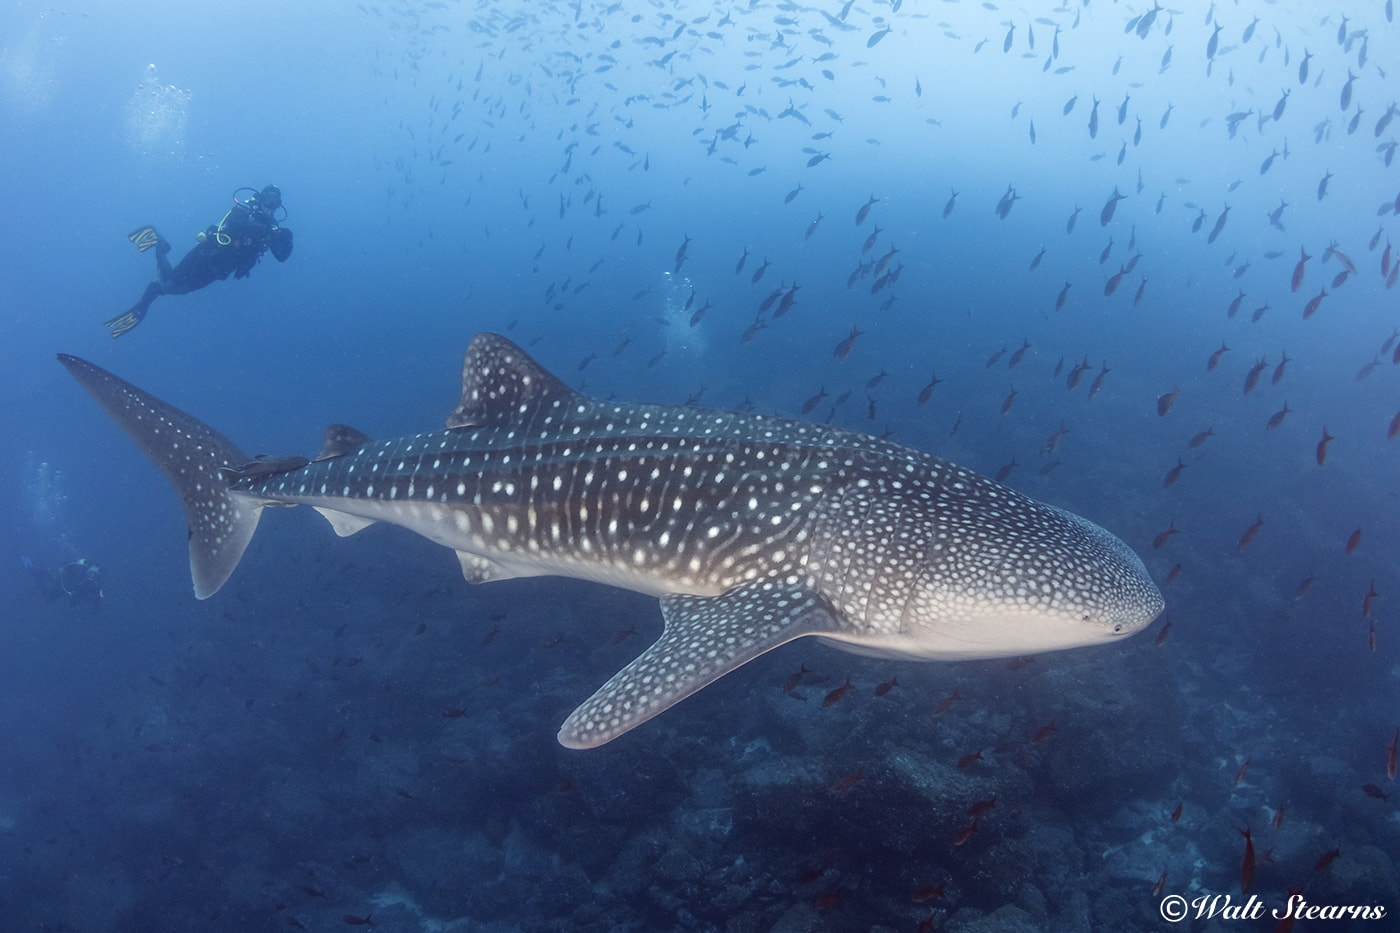 There is a chance of seeing whale sharks at any time of year, but the odds increase when cooler waters arrive in the months from July through November.